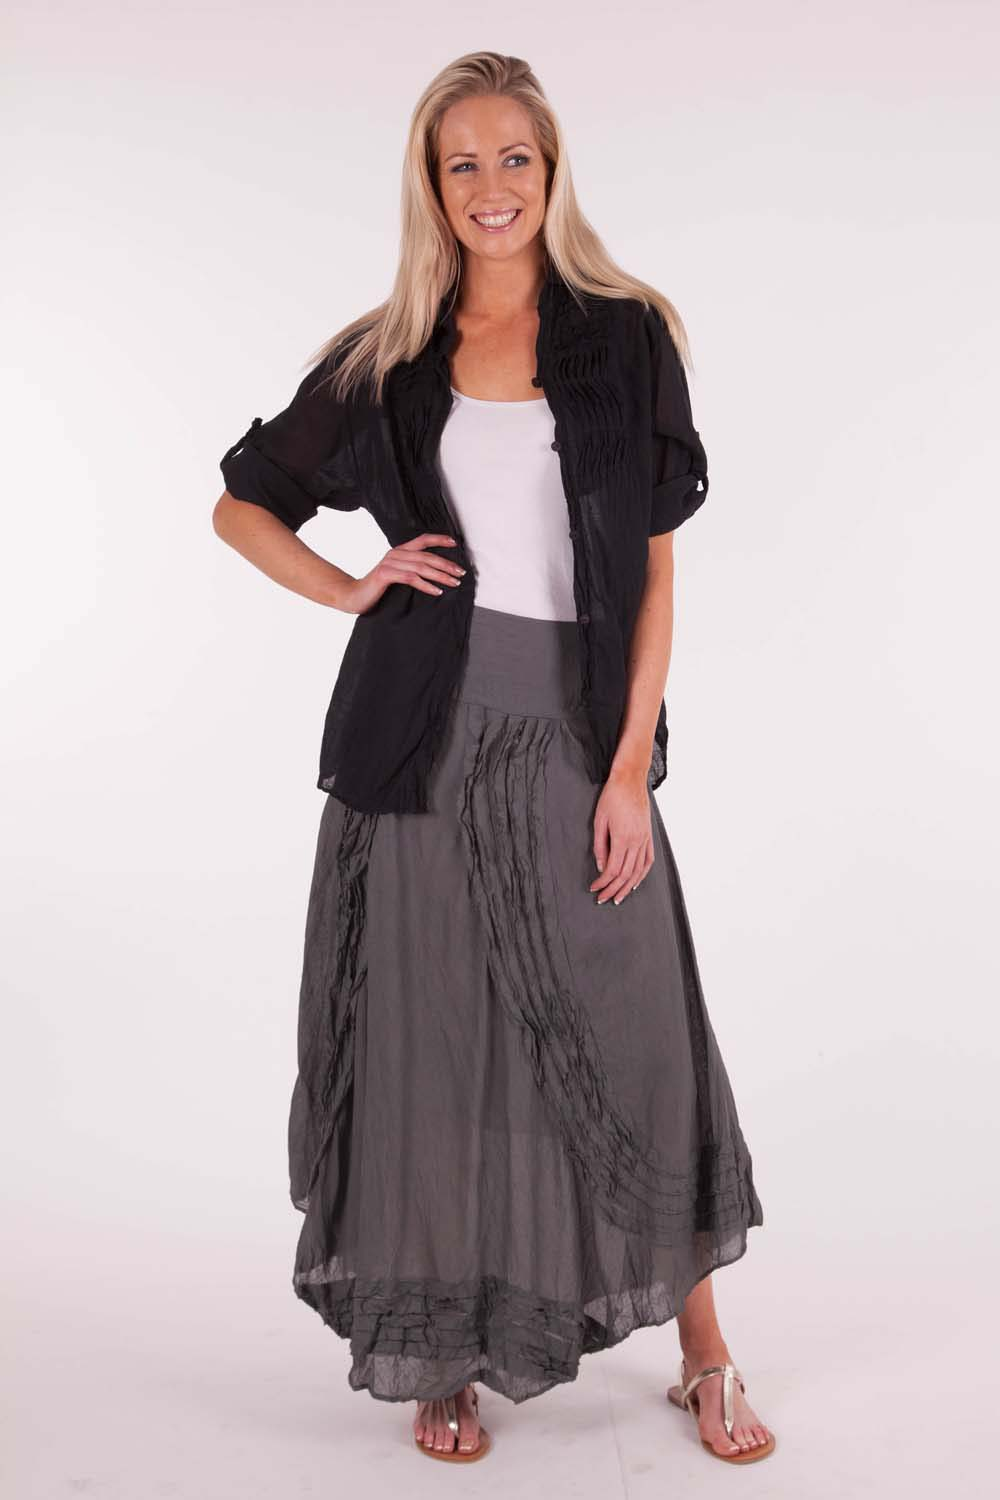 It is a long denim skirt in a darker blue color. It has a zip fly and button waist closure. There are 2 pocket in the front and a long slit in the back.